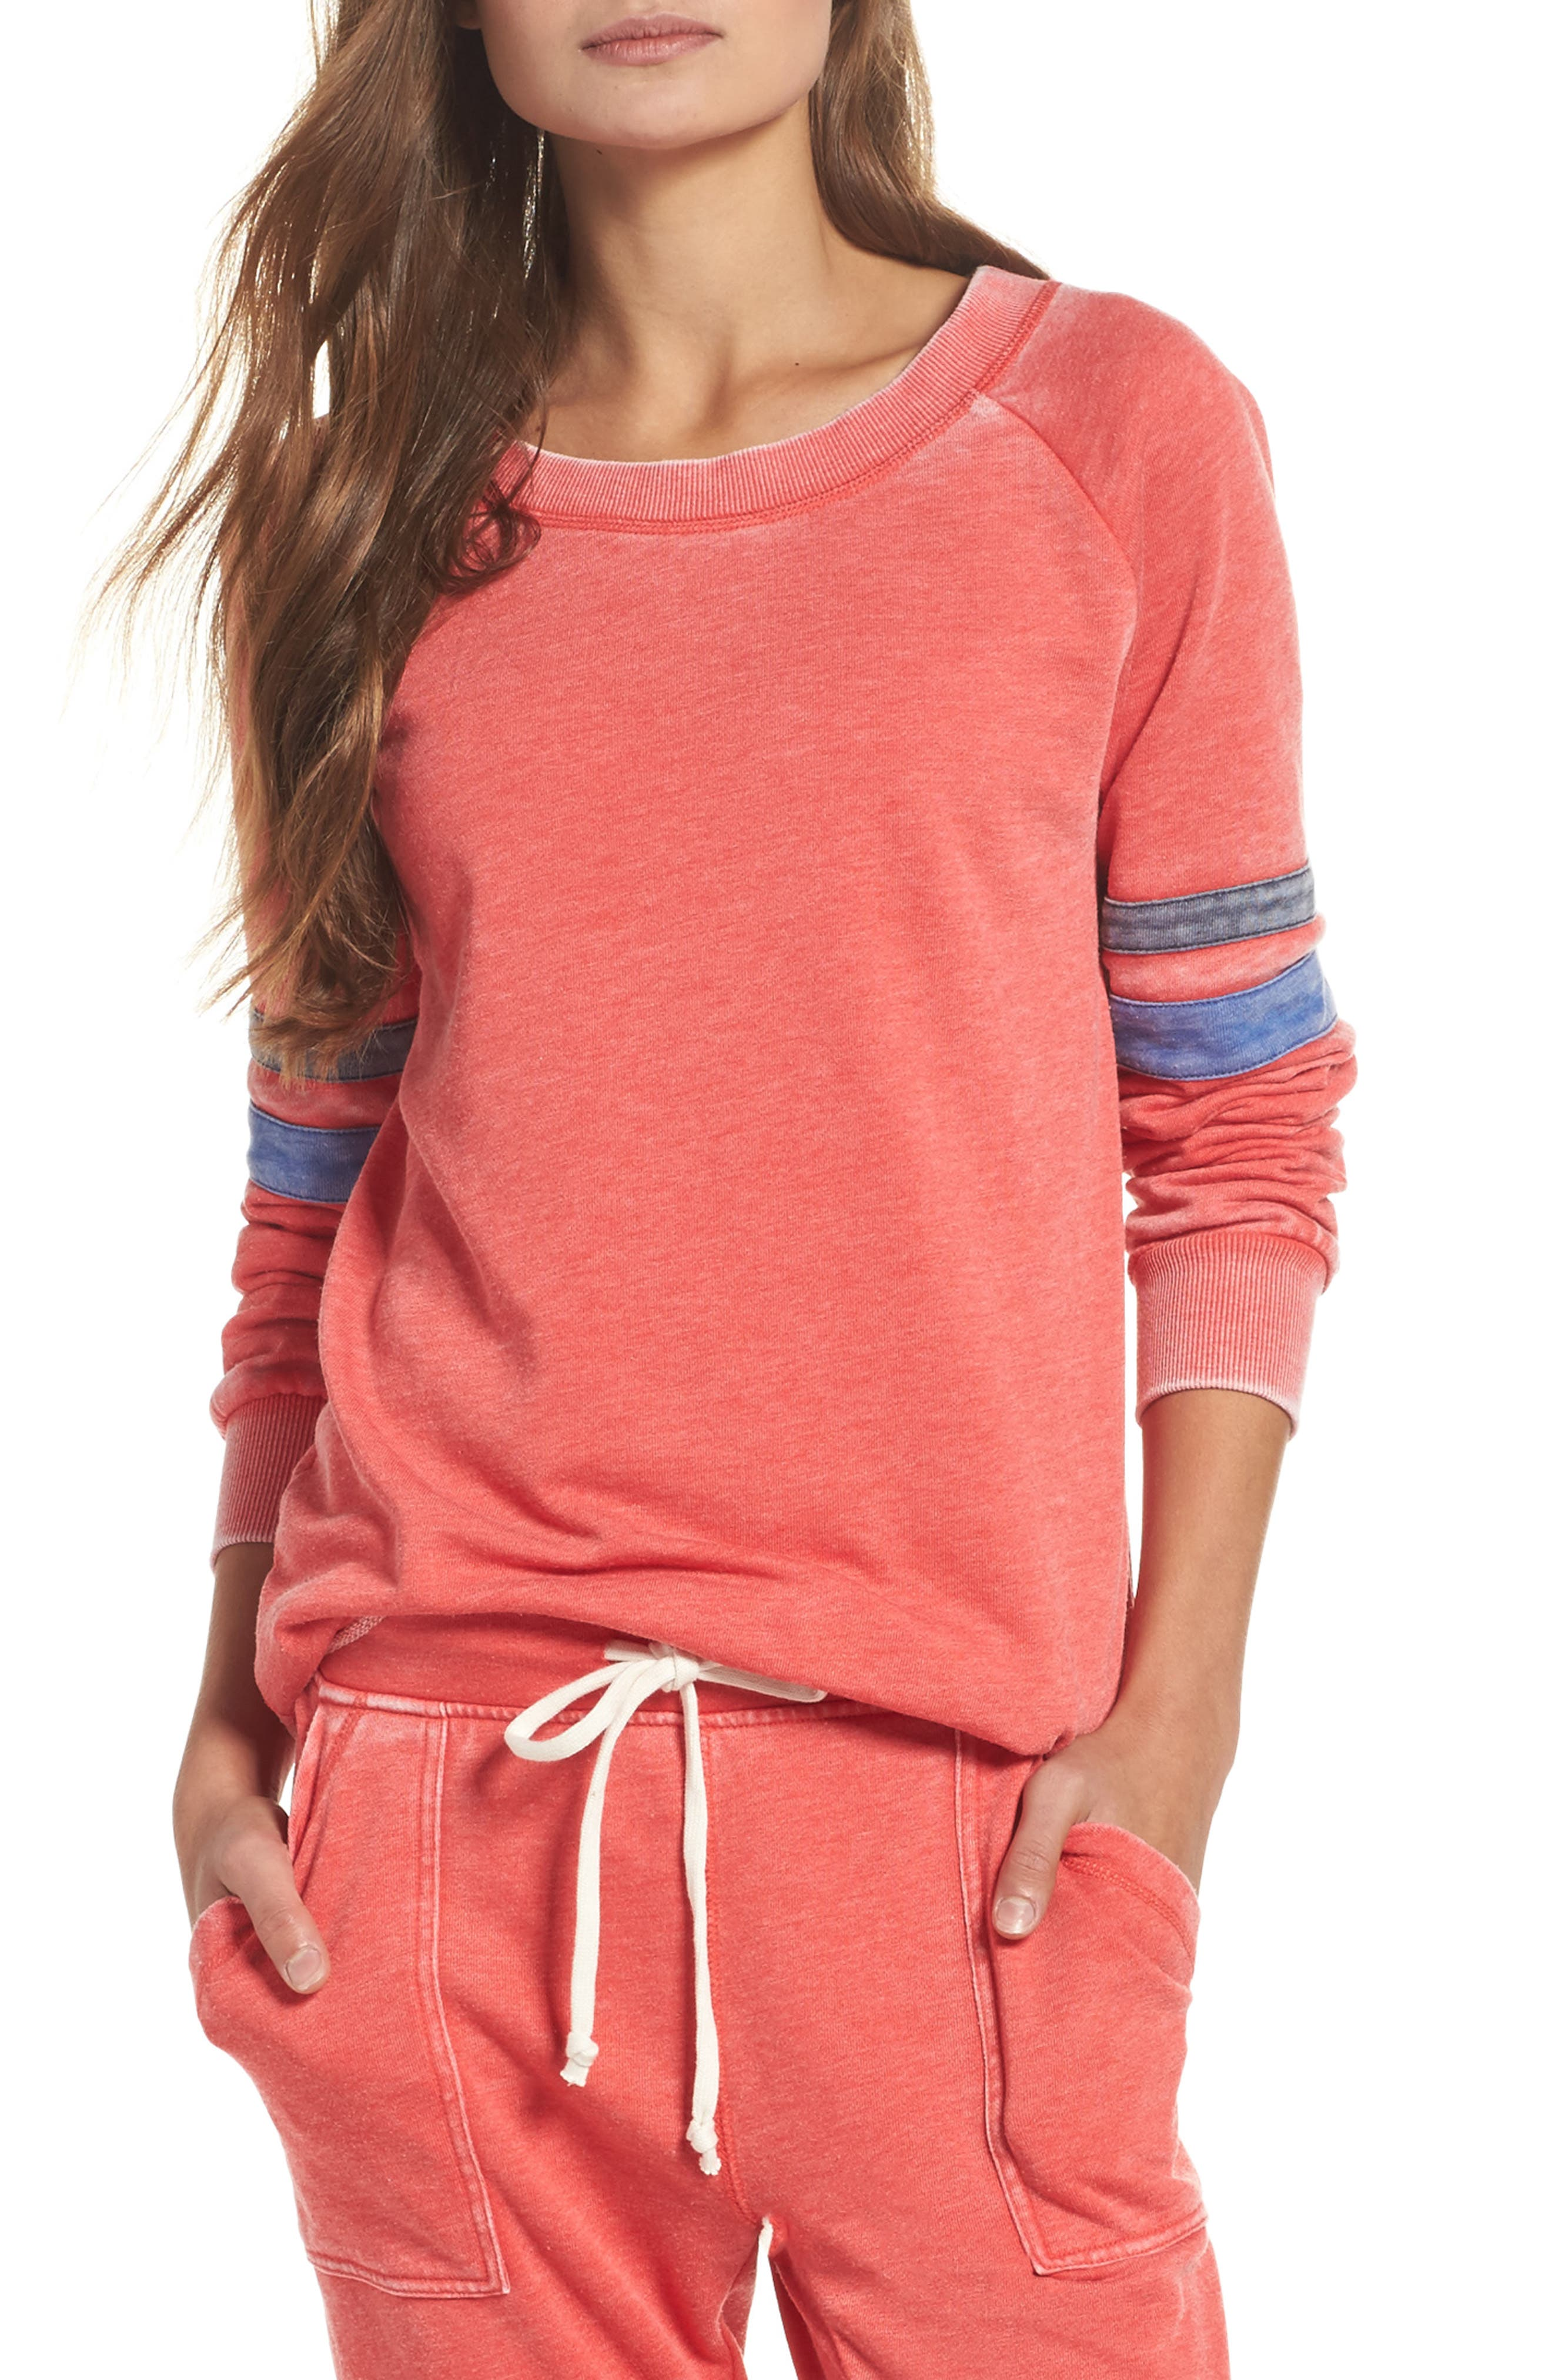 Lazy Day Sweatshirt,                         Main,                         color, 600